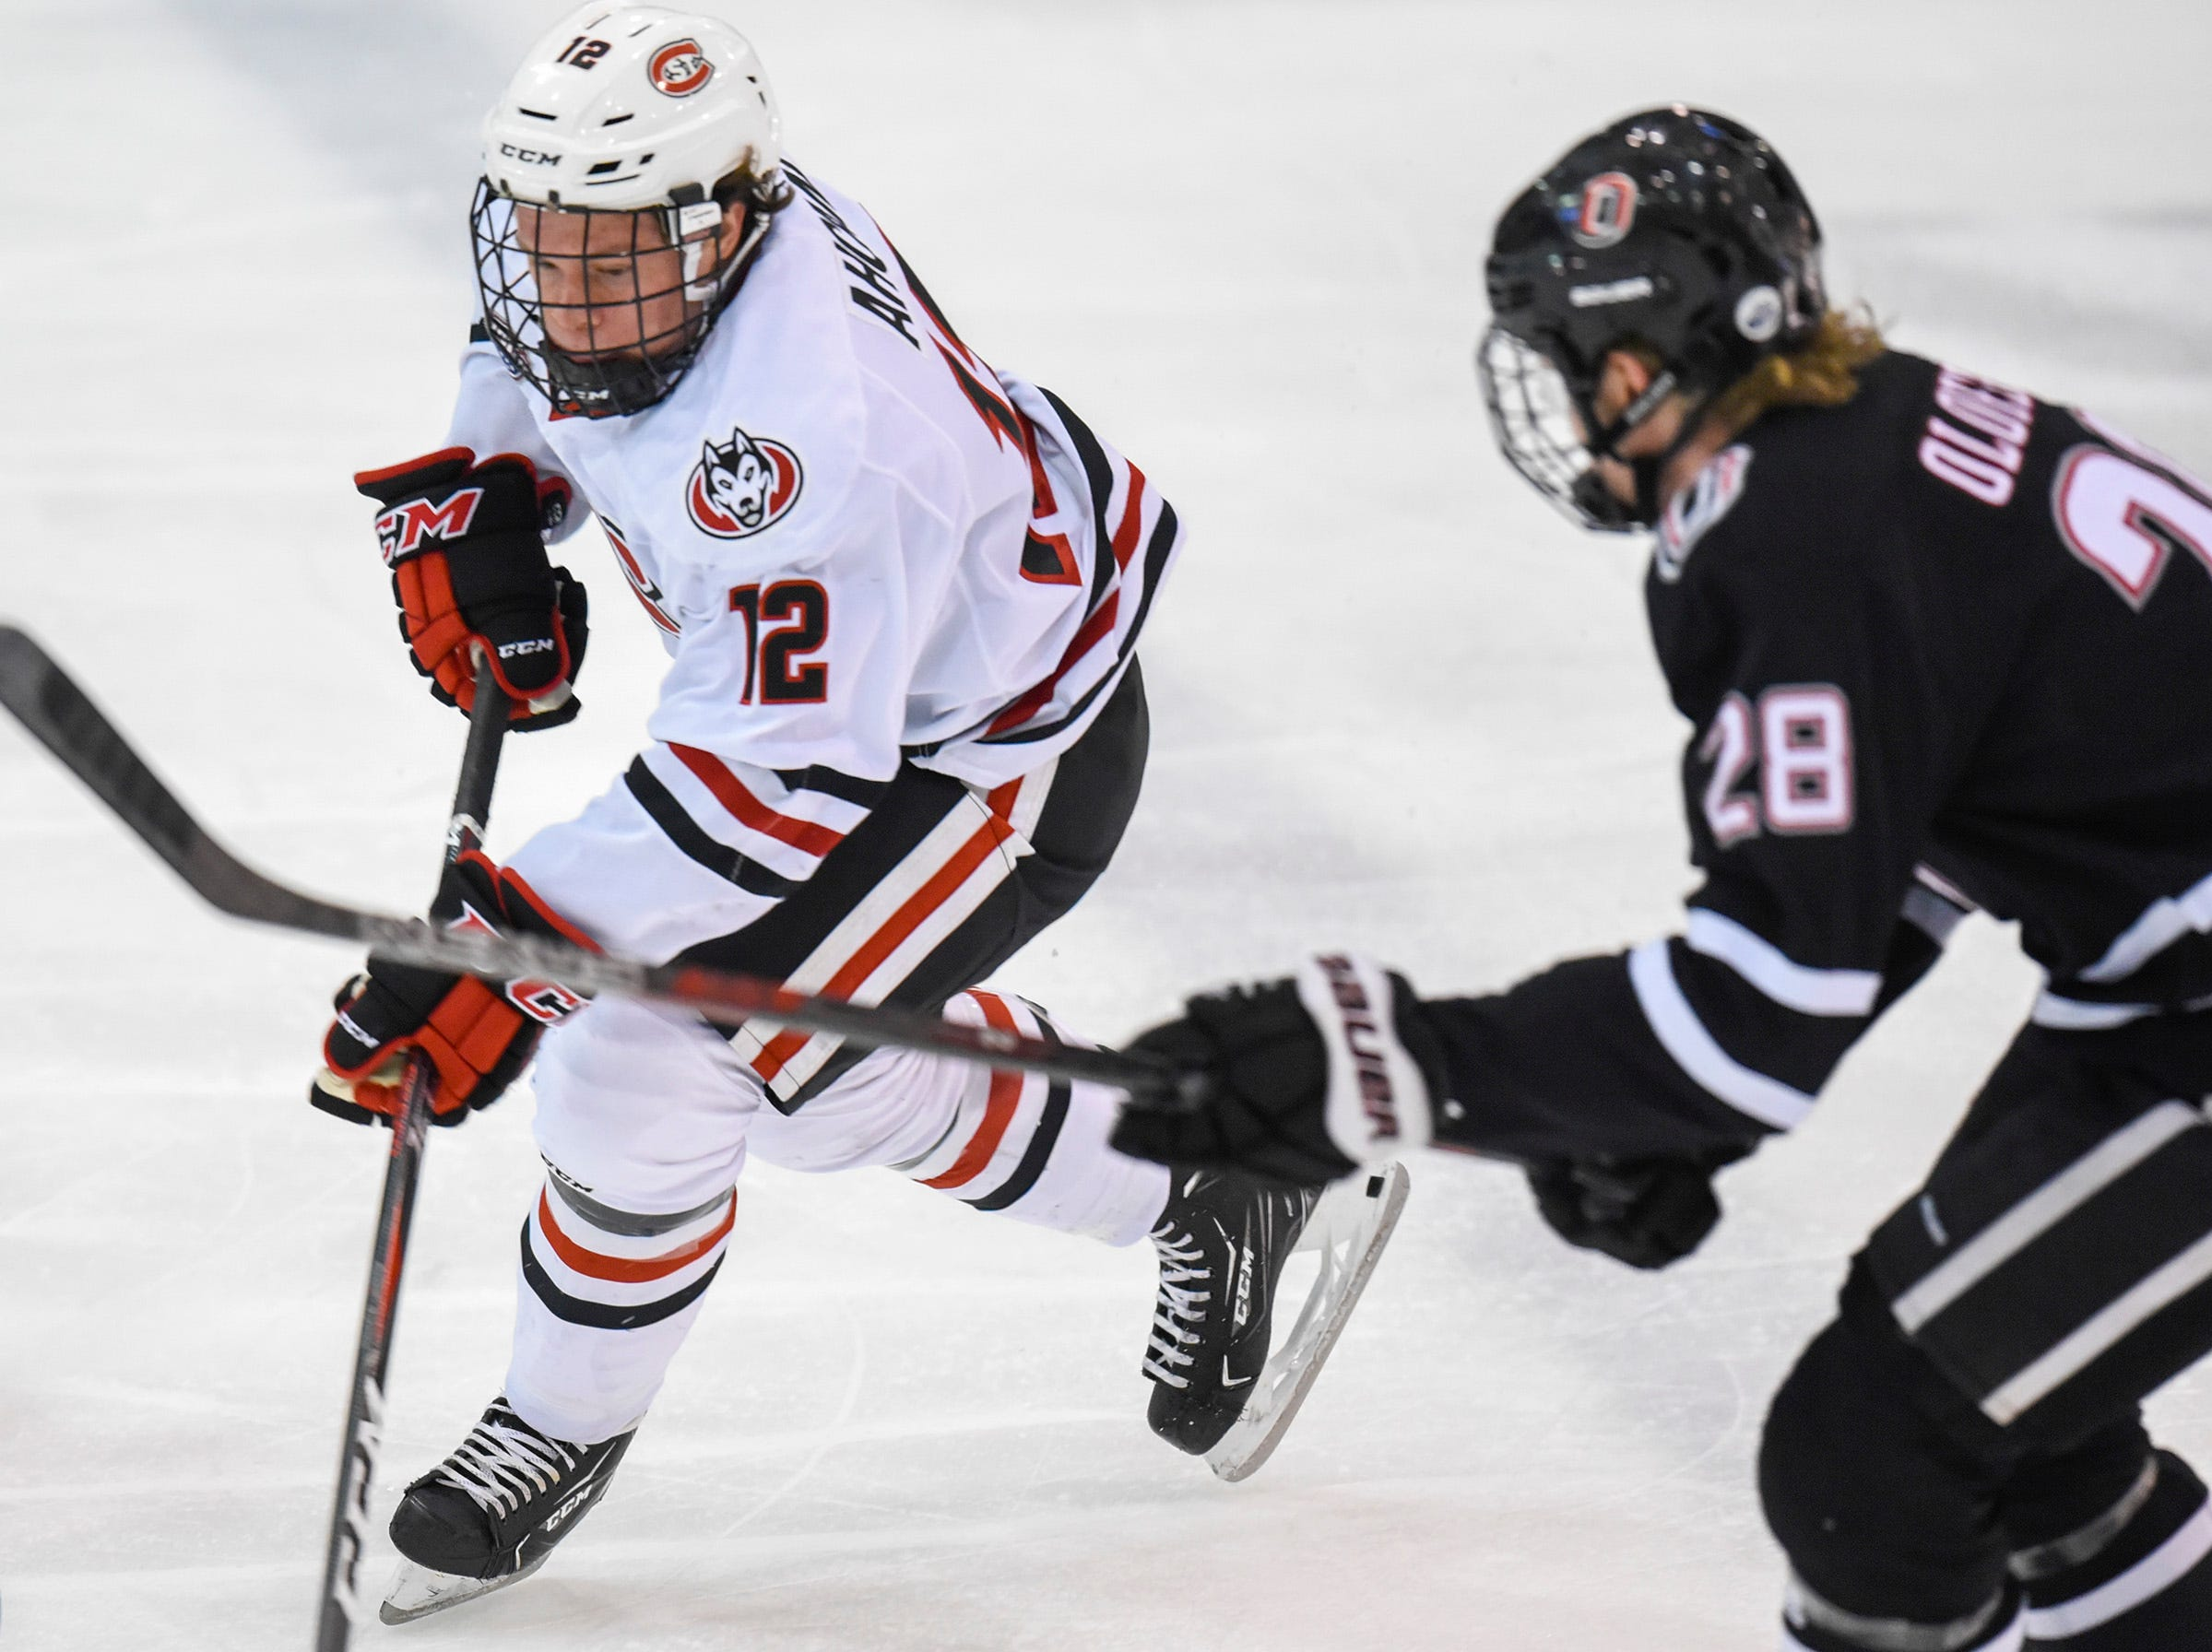 St. Cloud State's Jack Ahcan takes the puck past Nebraska-Omaha's Fredrik Olofsson during the first period Friday, Dec. 7, at the Herb Brooks National Hockey Center.